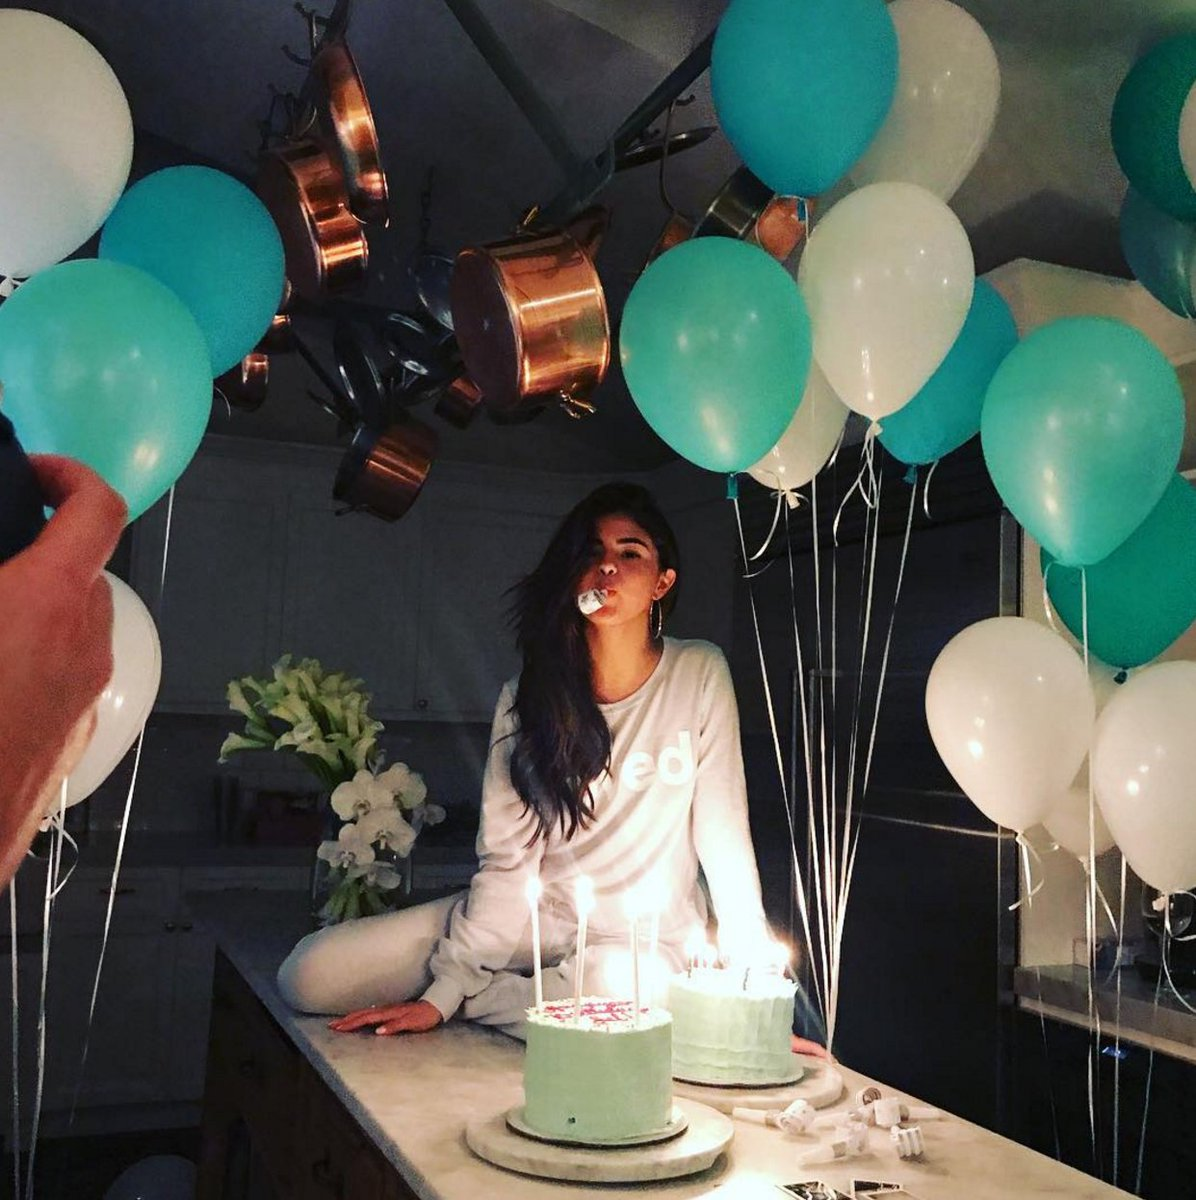 Selena Gomez was the definition of casual, comfy perfection on her 25th birthday: